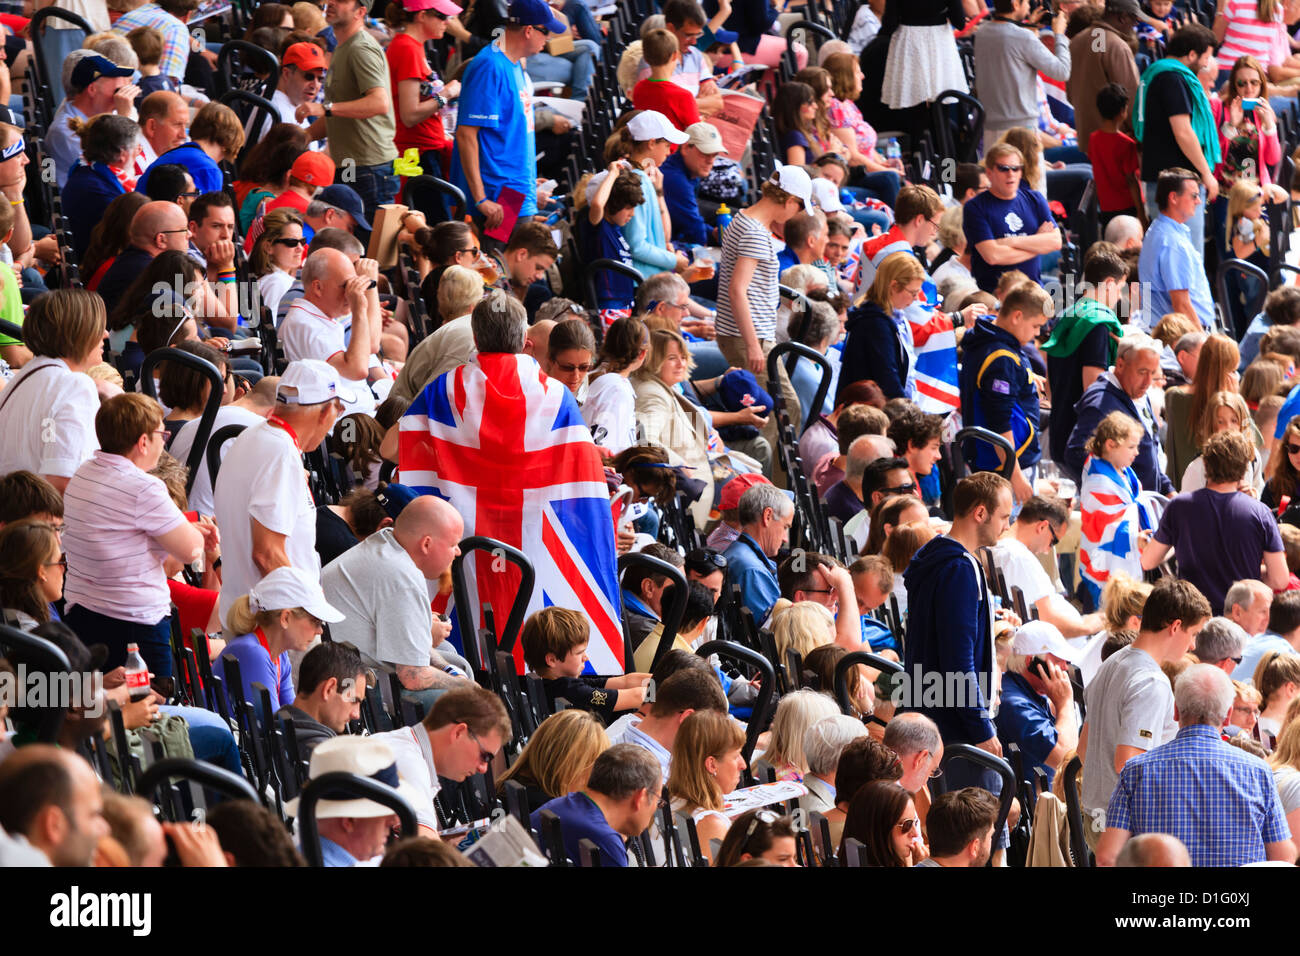 Crowd of British spectators with Union flags in a sports arena, London, England, United Kingdom, Europe - Stock Image